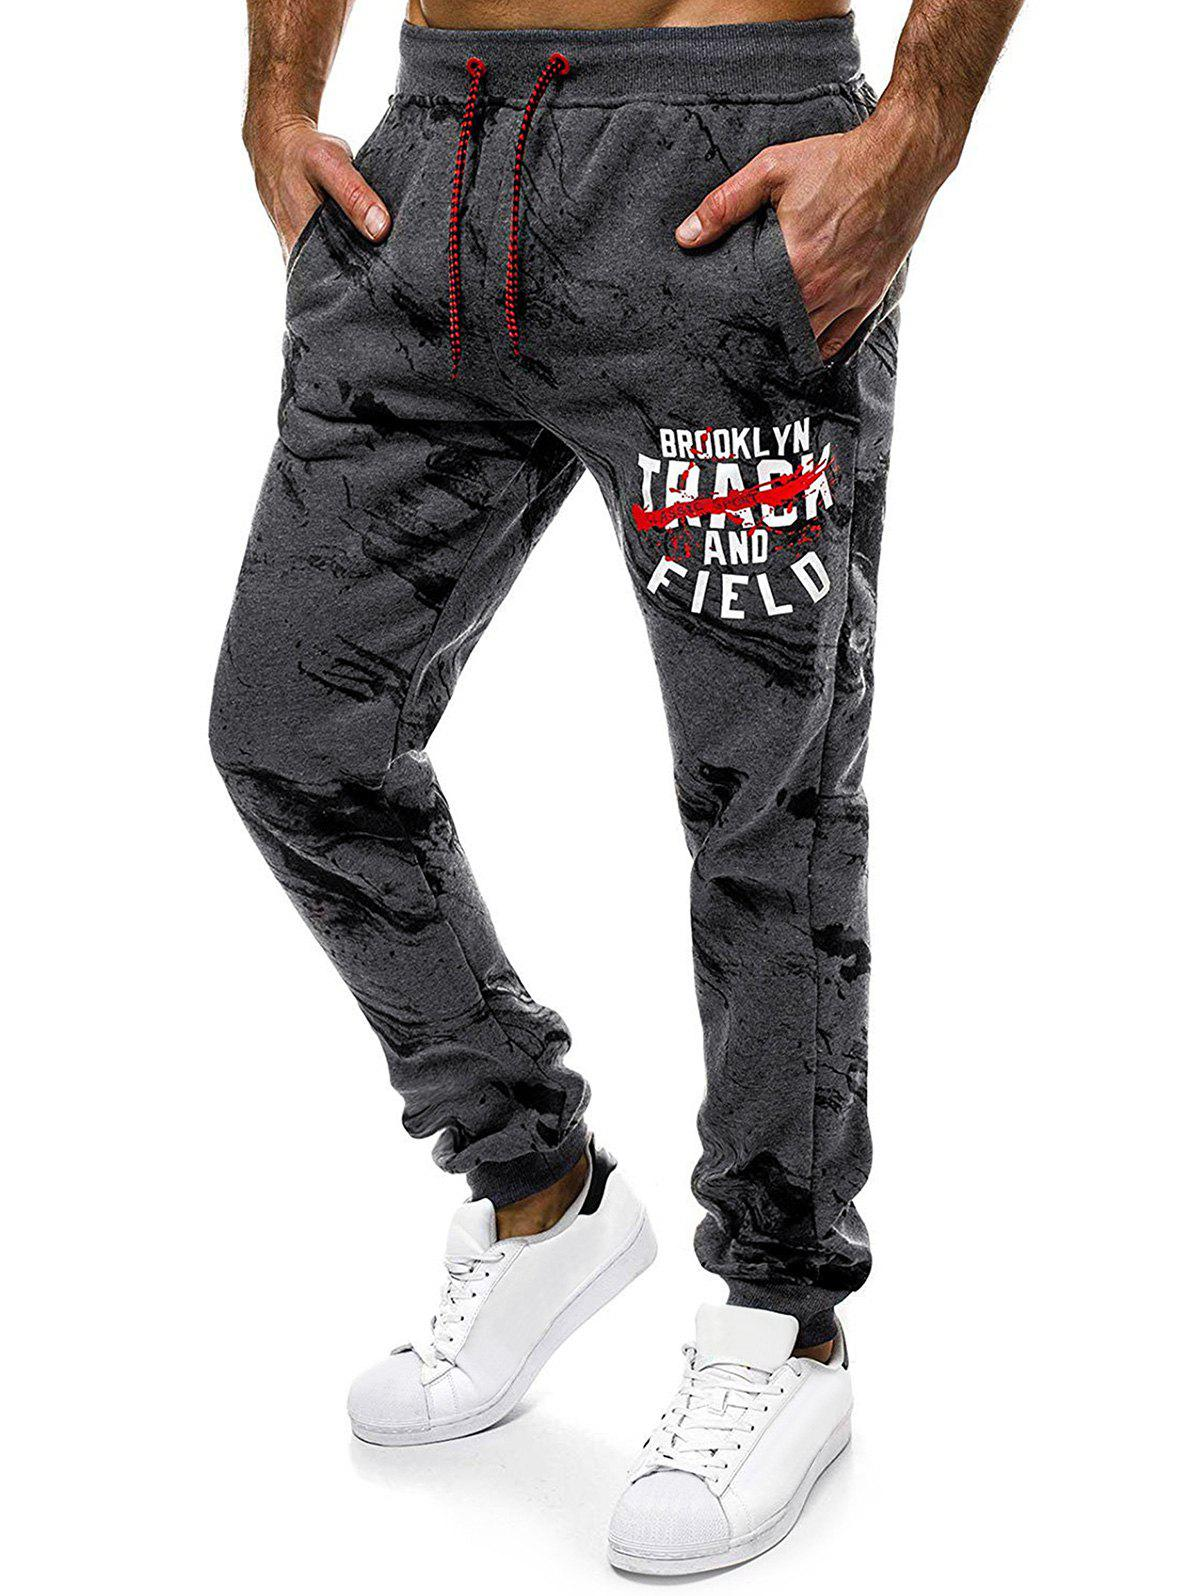 Letter Graphic Painting Print Drawstring Casual Jogger Pants - multicolor 2XL